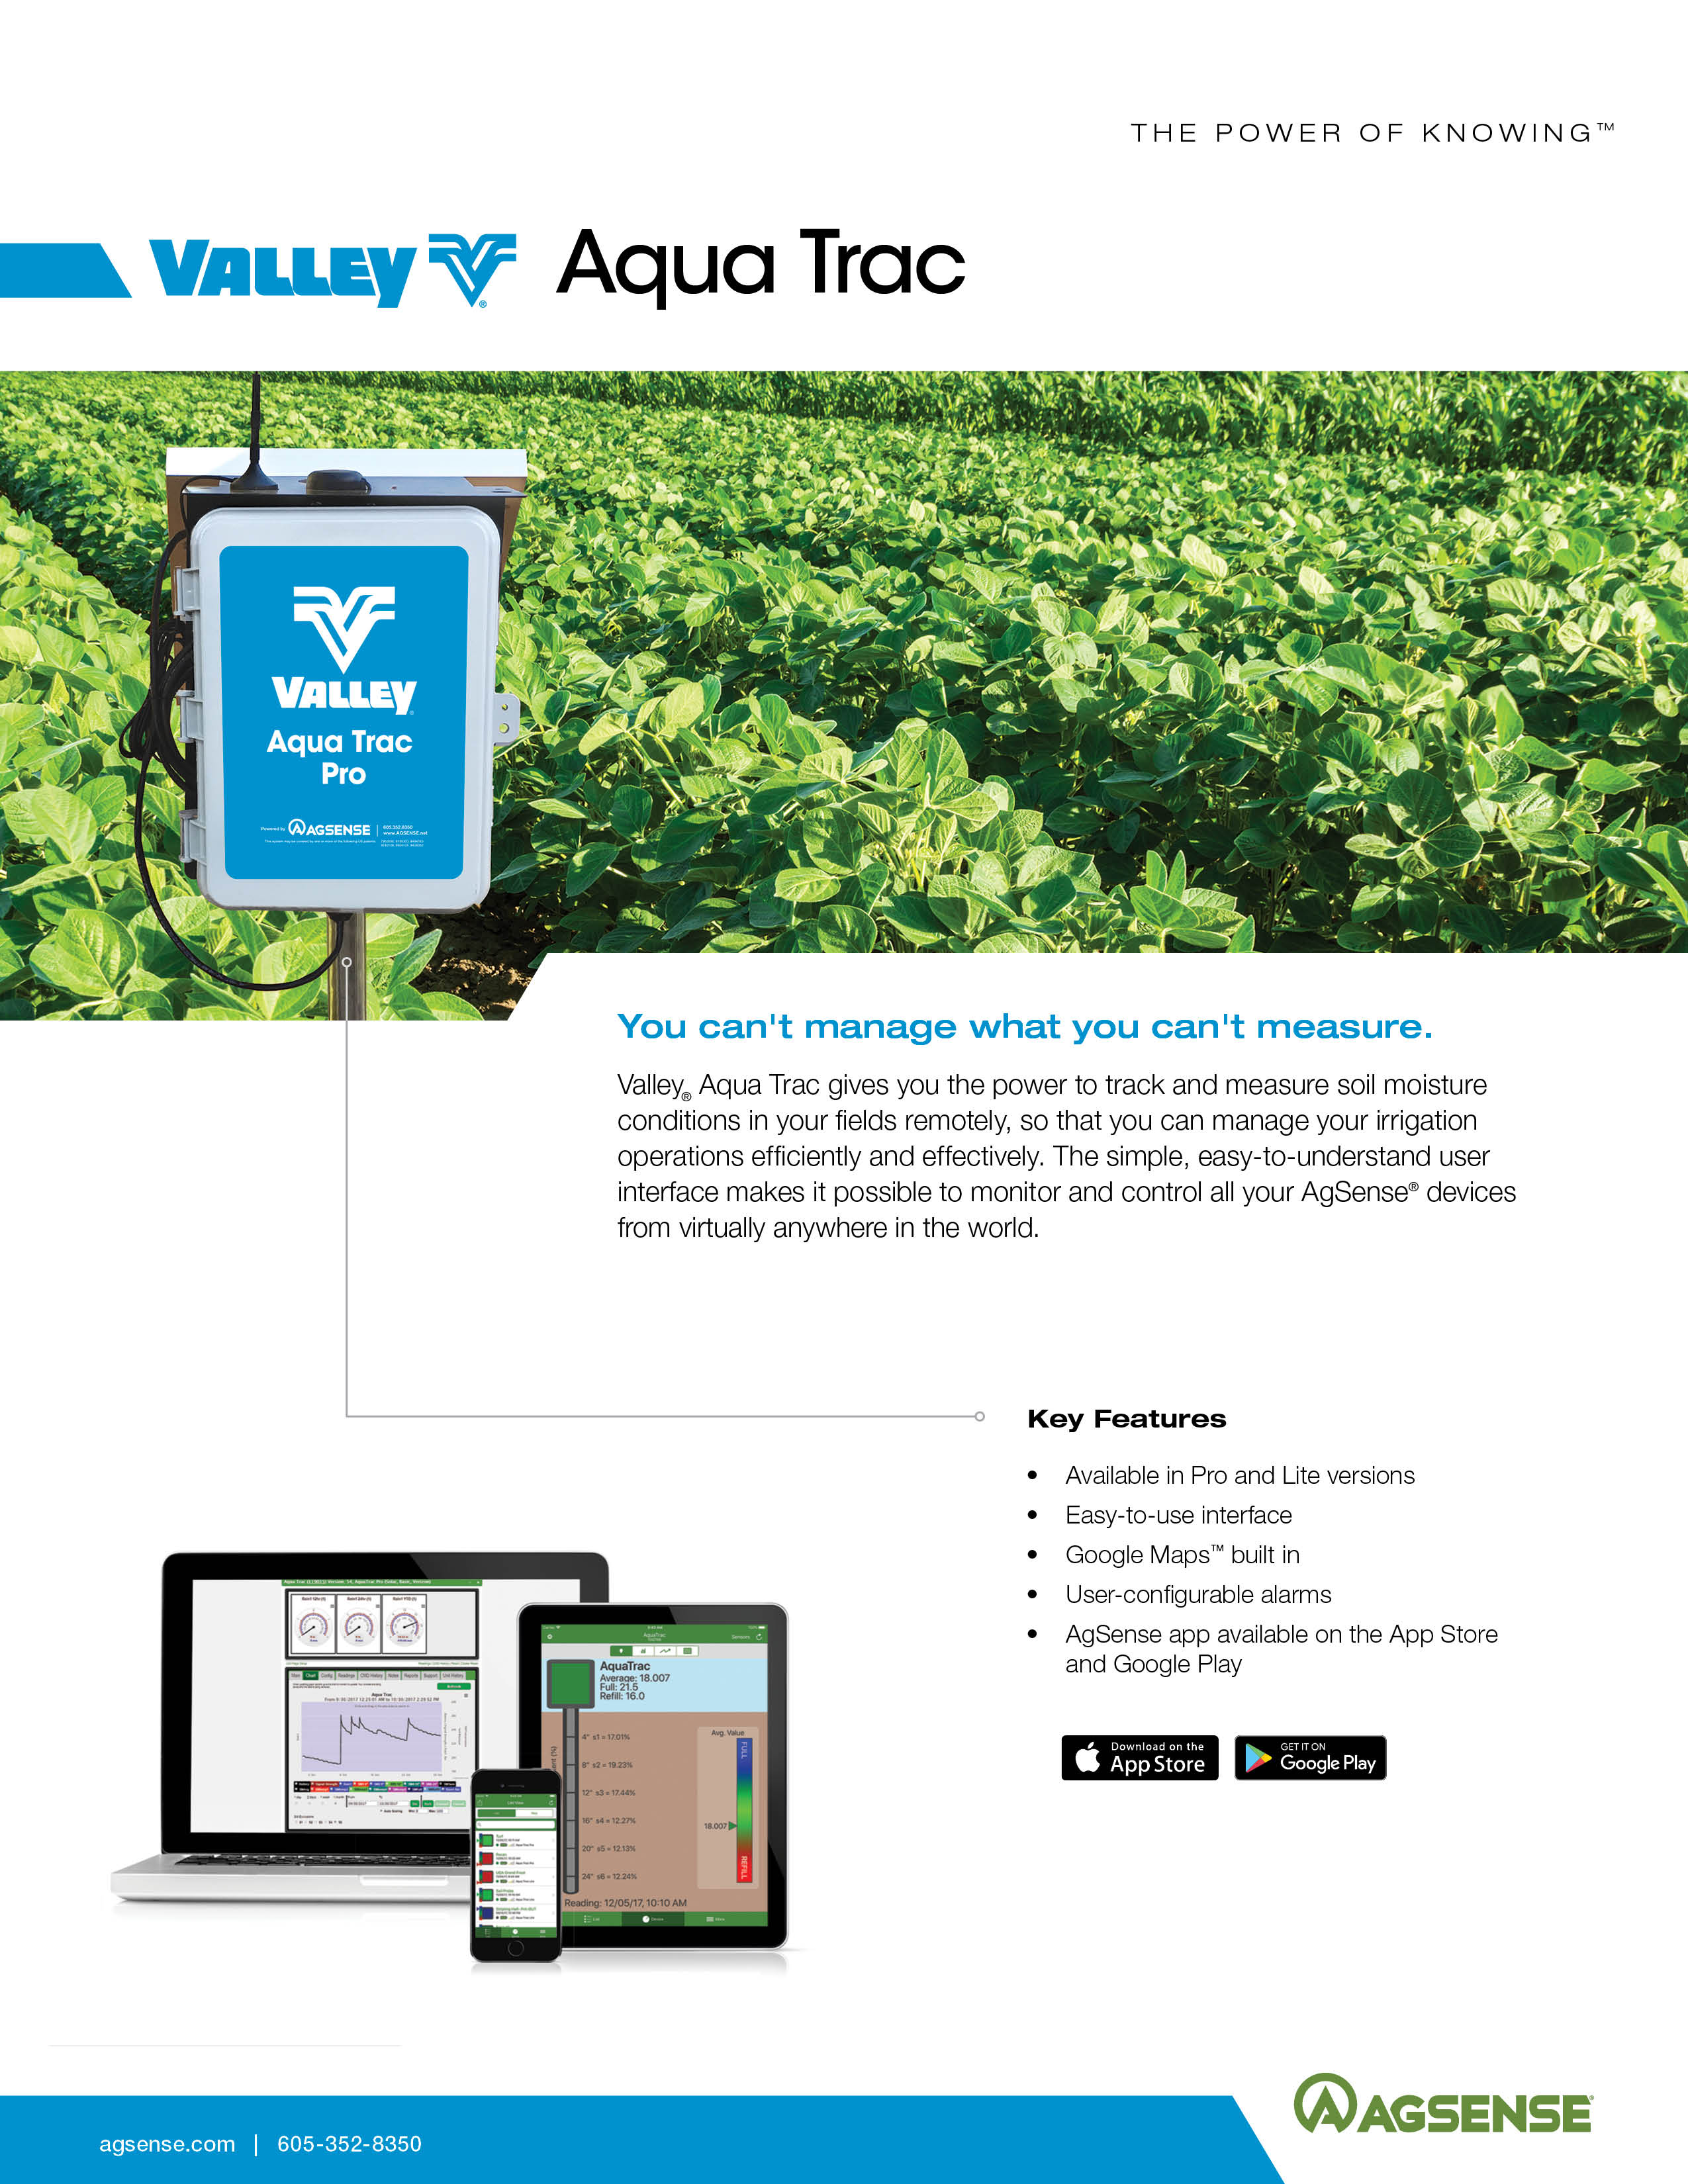 agsense aqua trac brochure